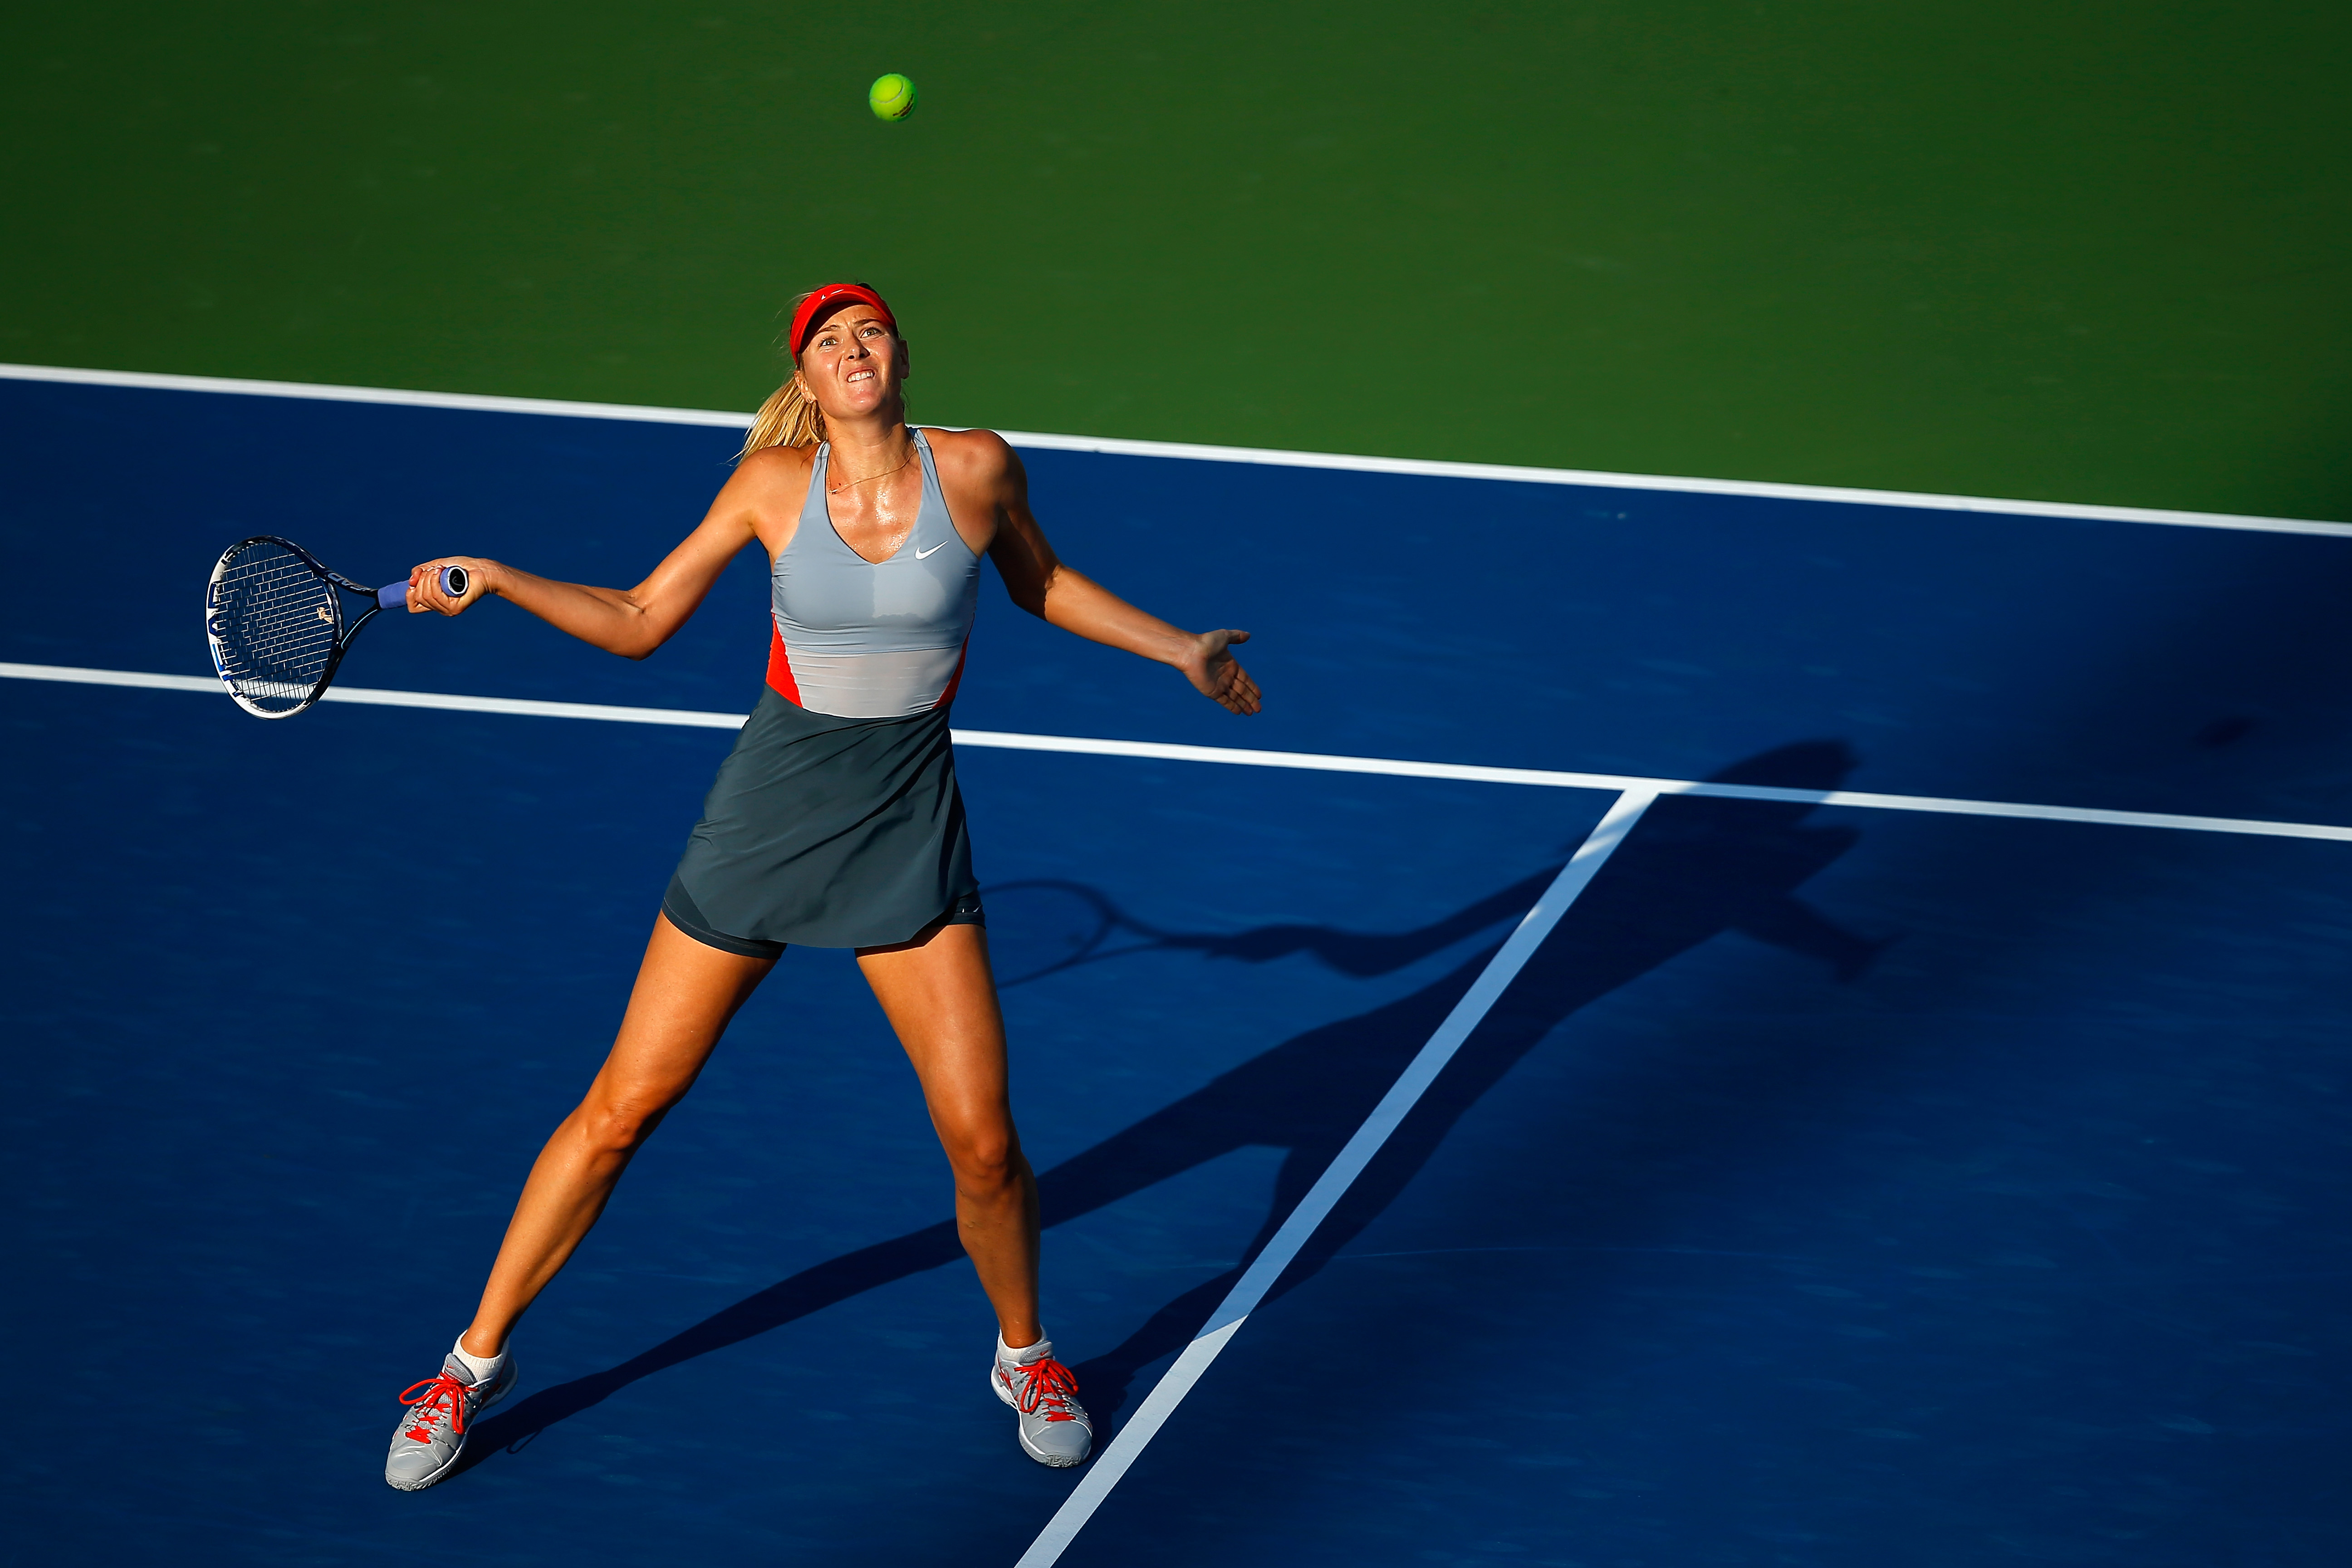 We weren't fans of her night dress, but Sharapova's Nike day kit had a chic modern cut.